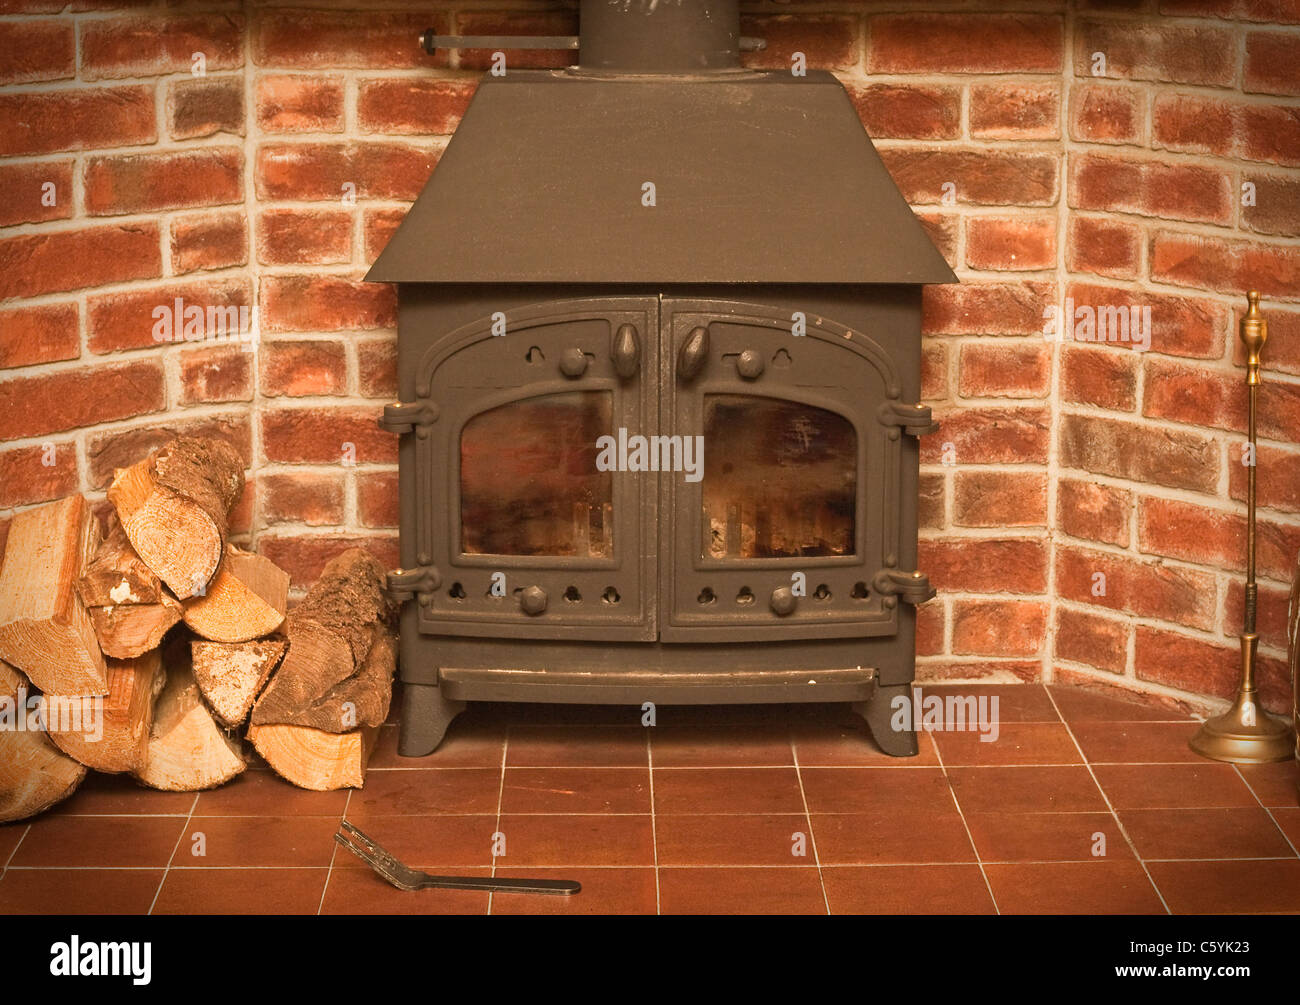 A wood burning stove in a red brick fireplace - Stock Image